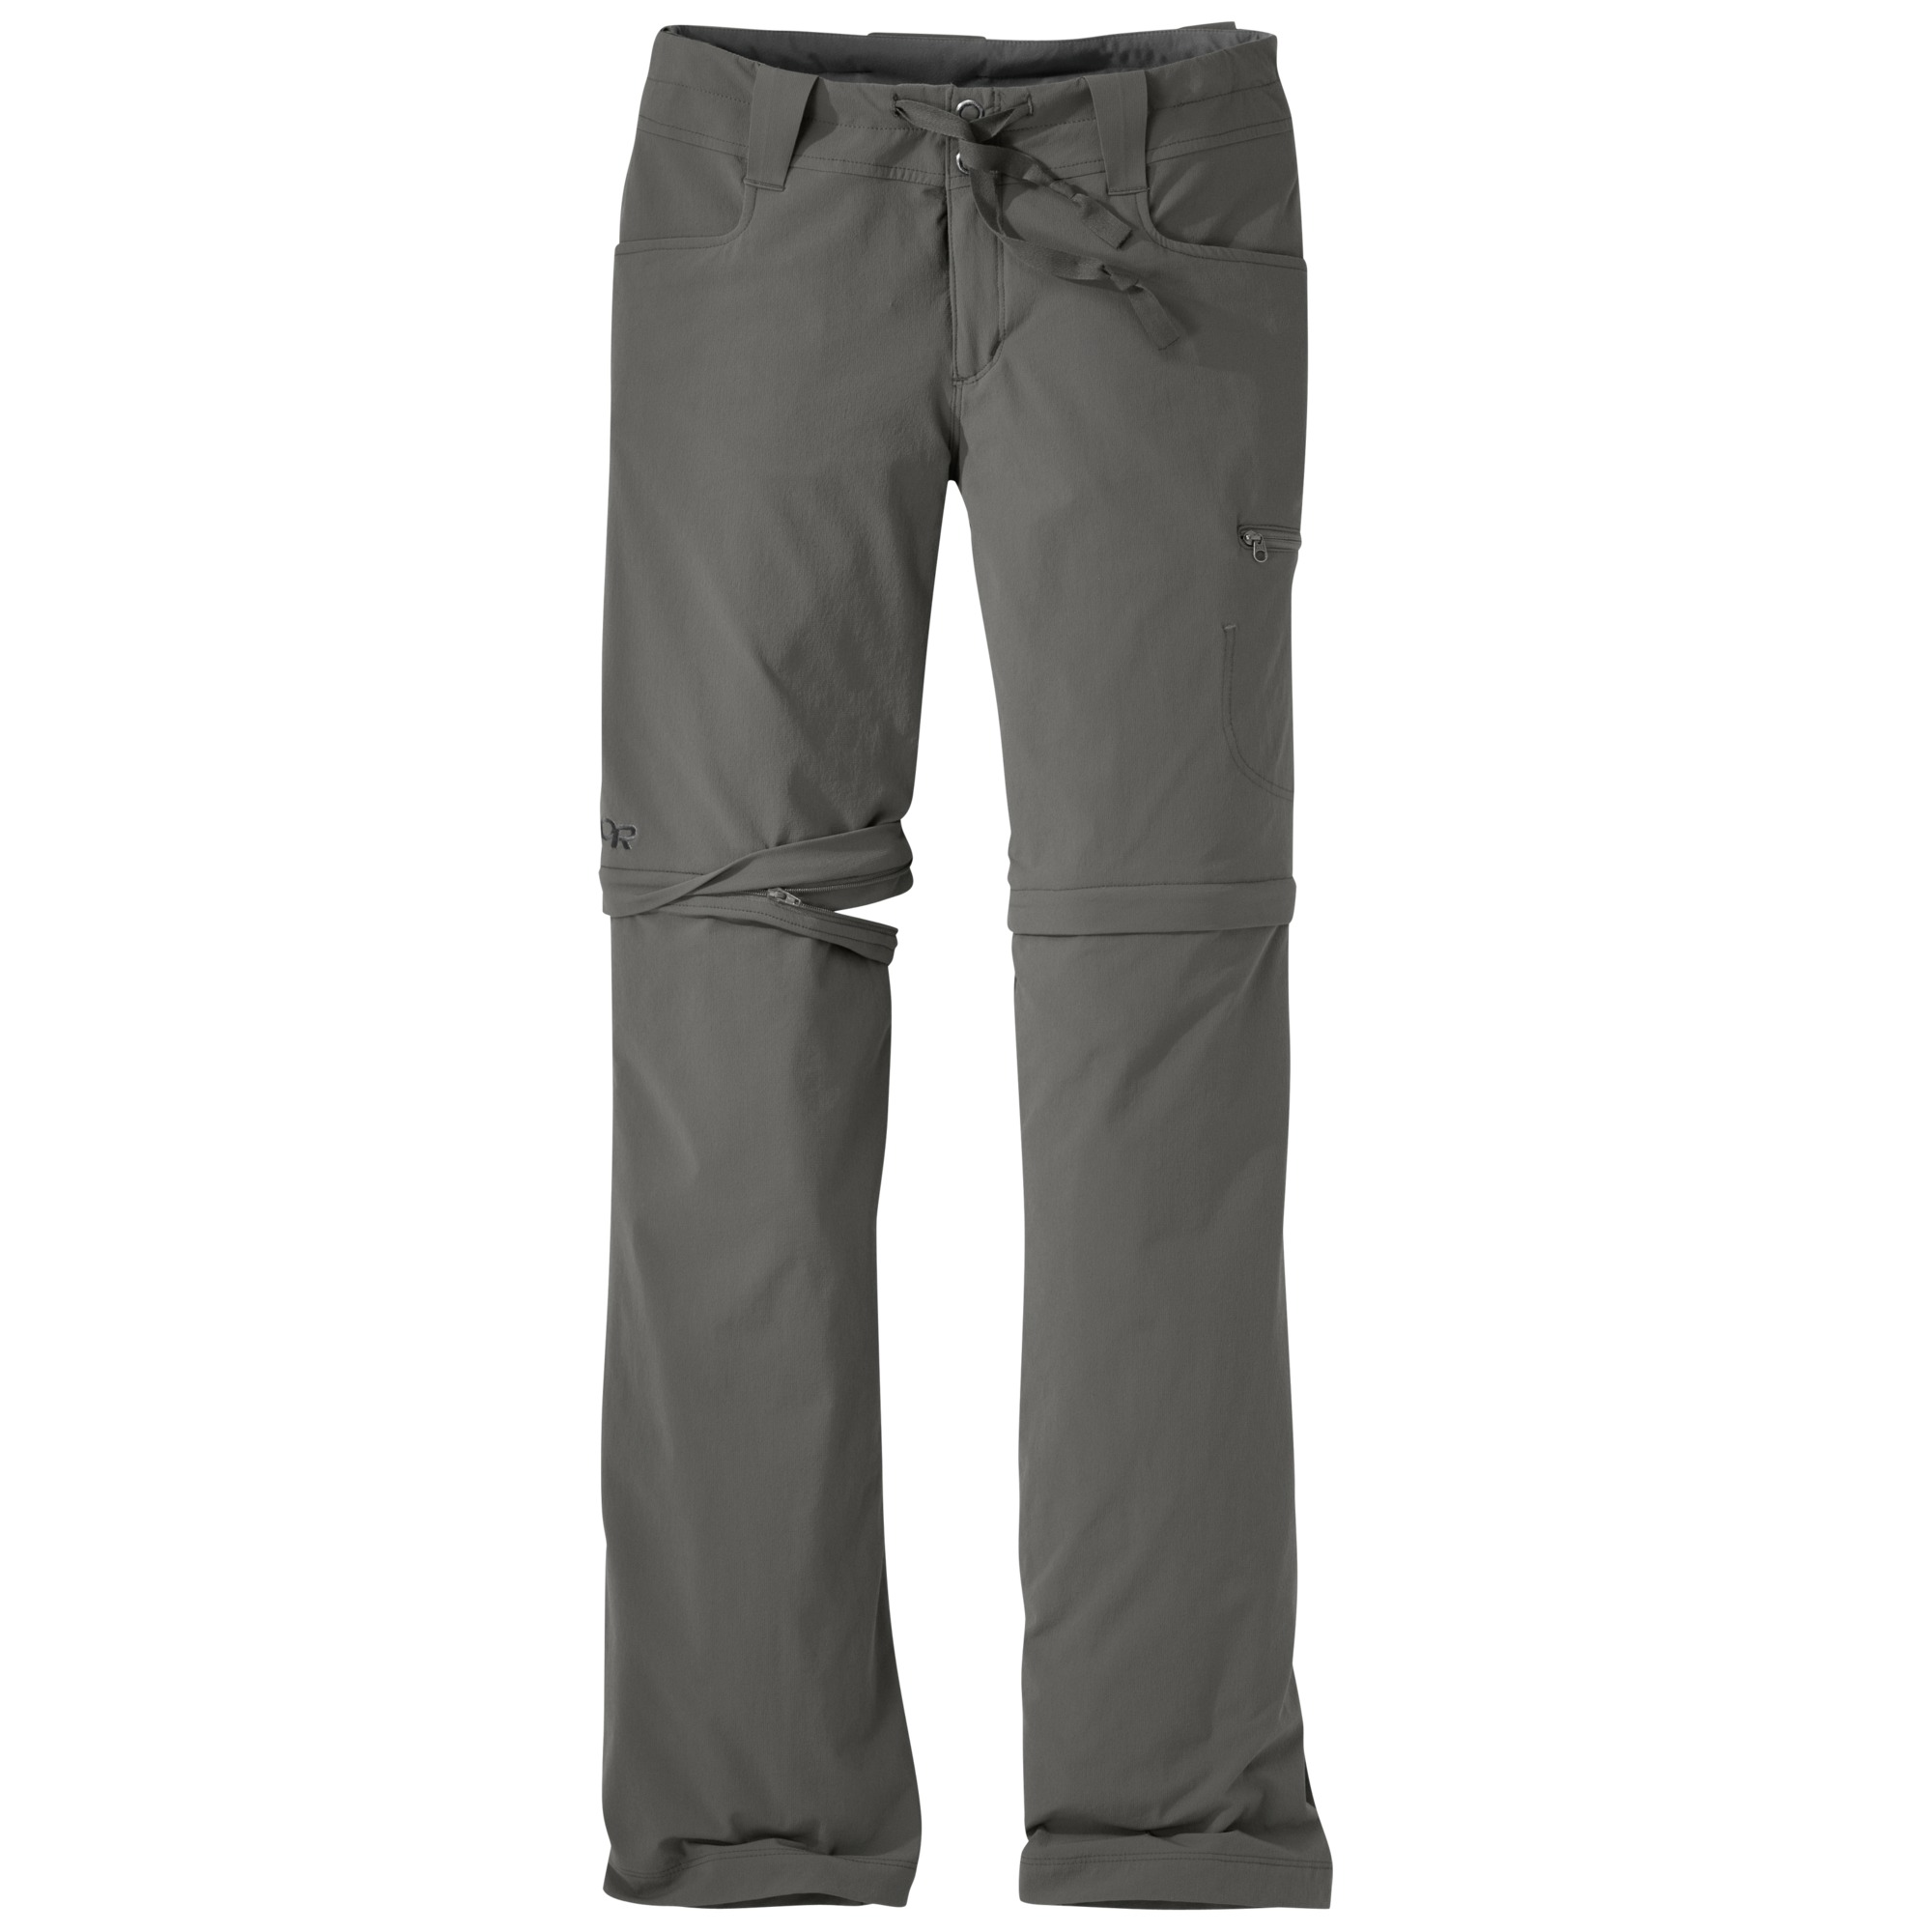 Outdoor Research Women's Ferrosi Convertible Pants-pewter-10 - Gr. 10